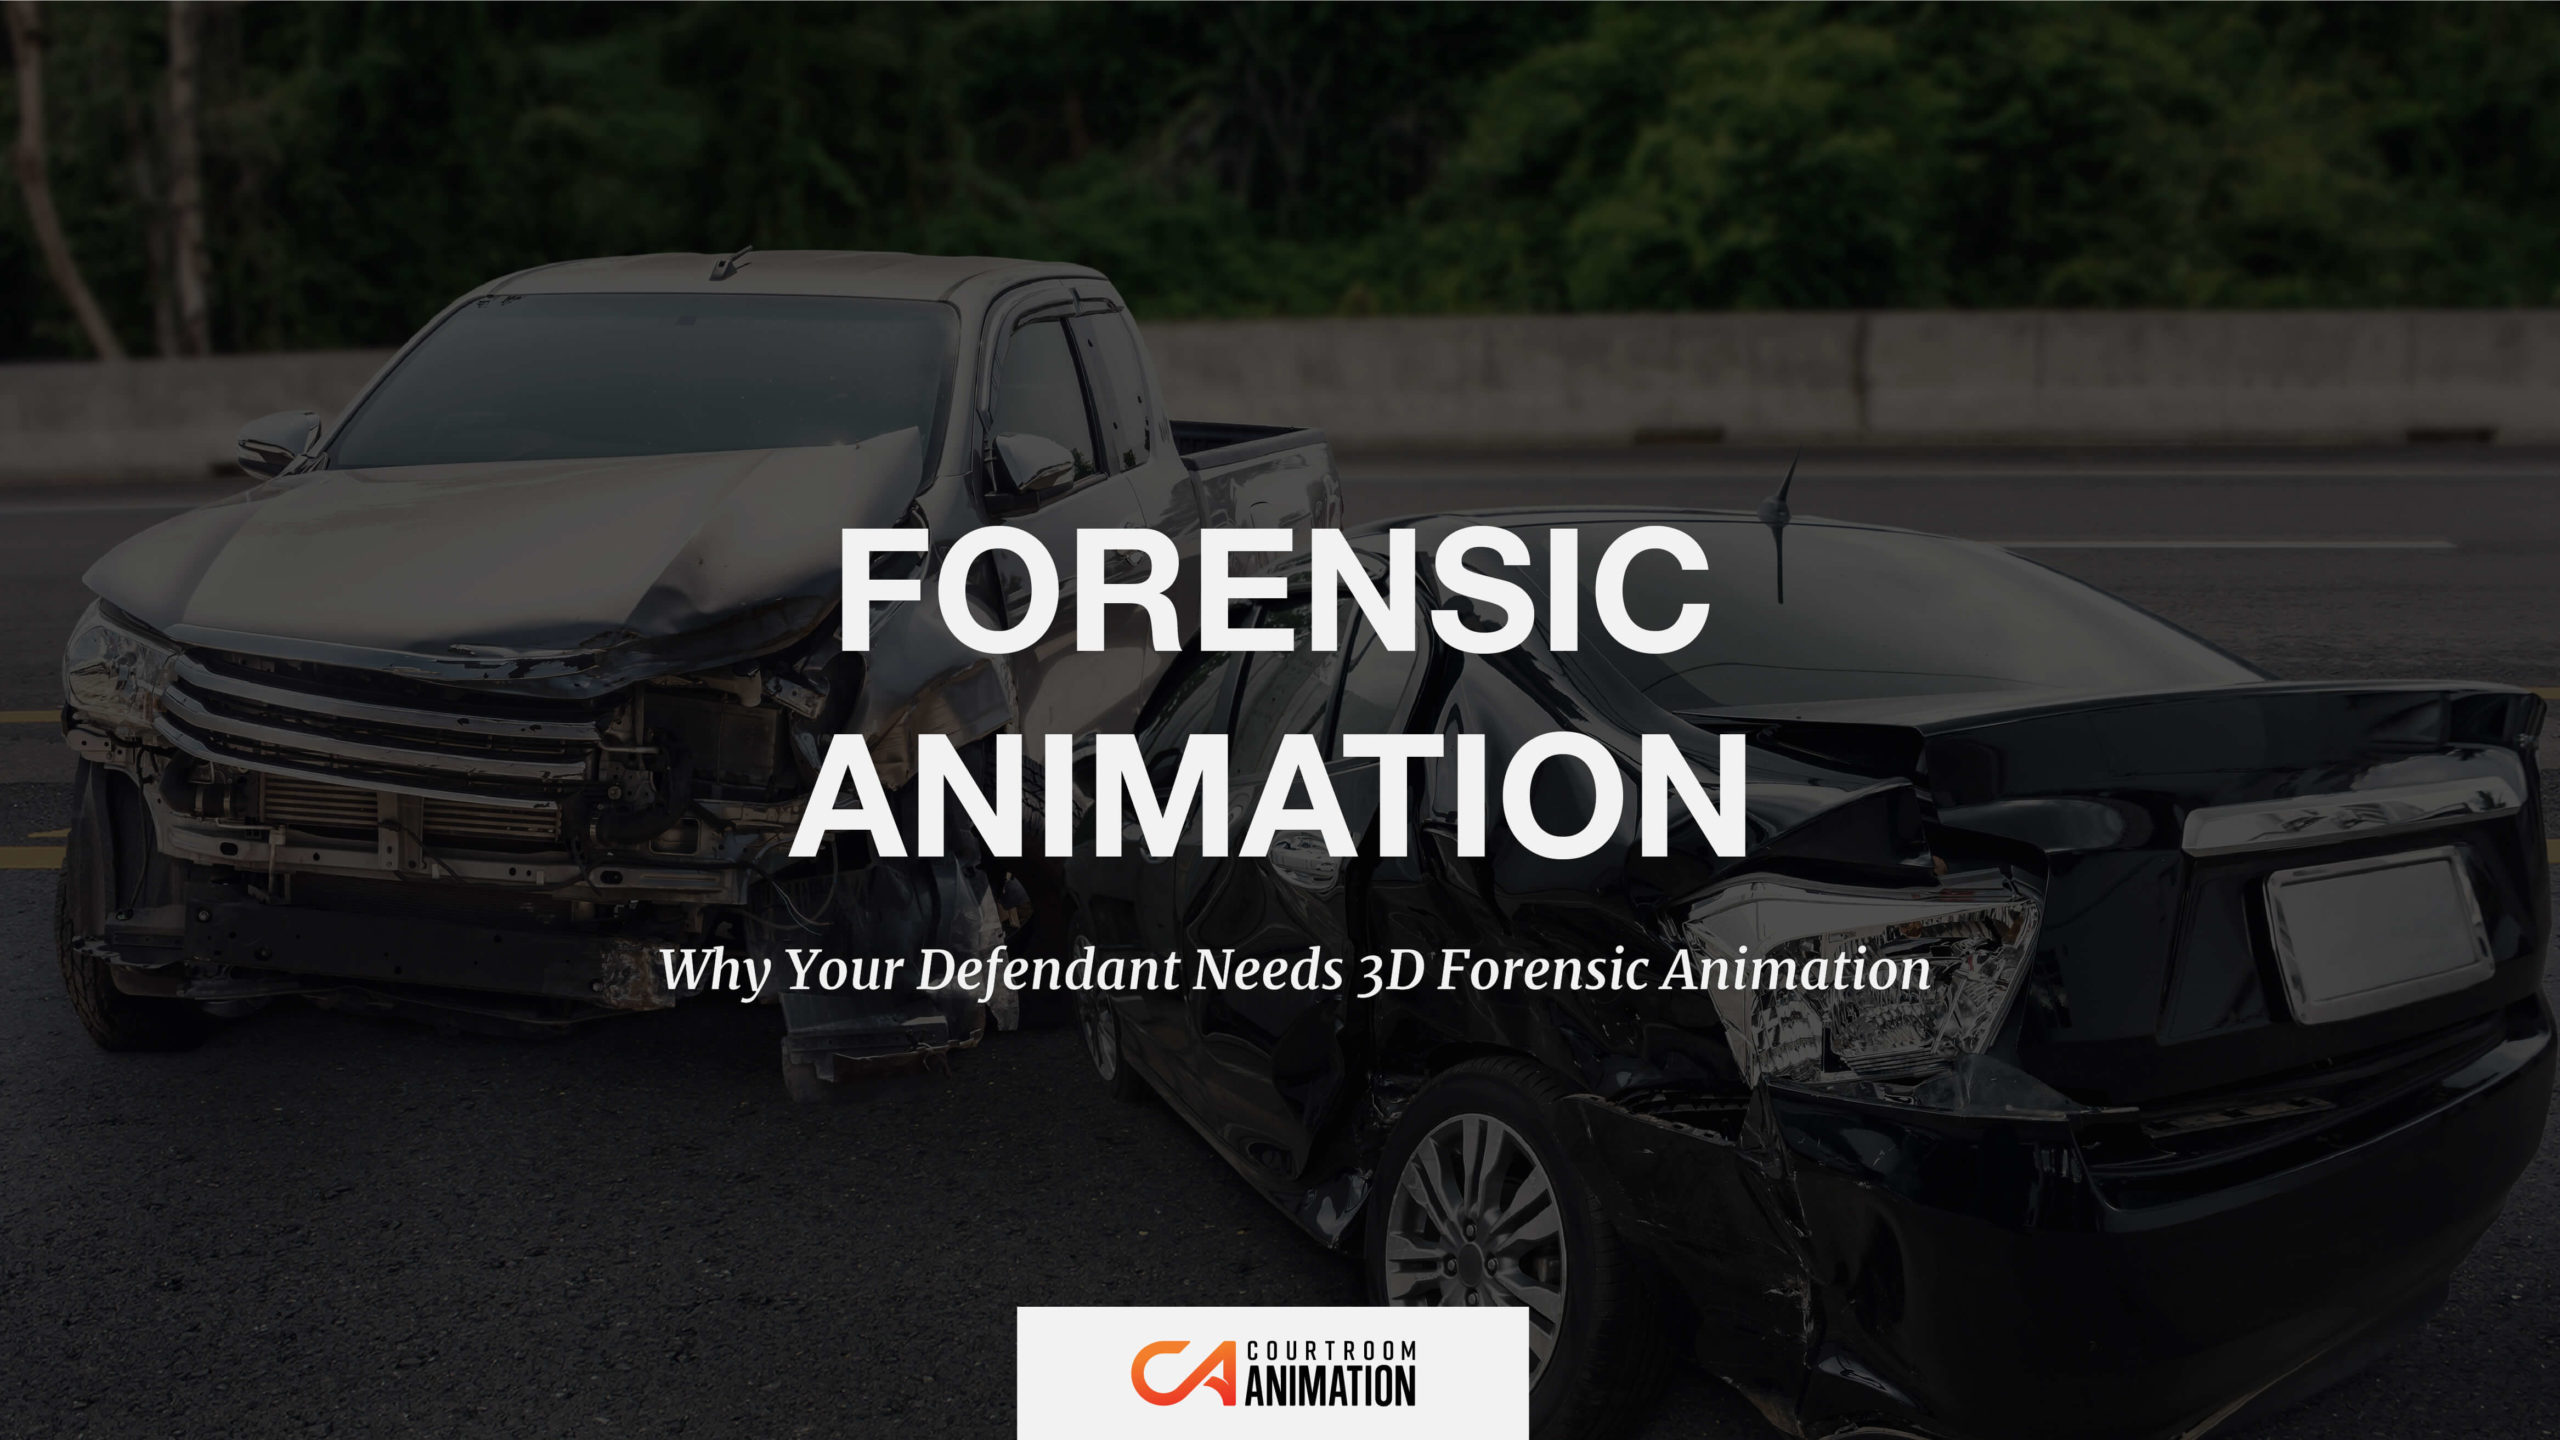 3D forensic animation for defendant cases